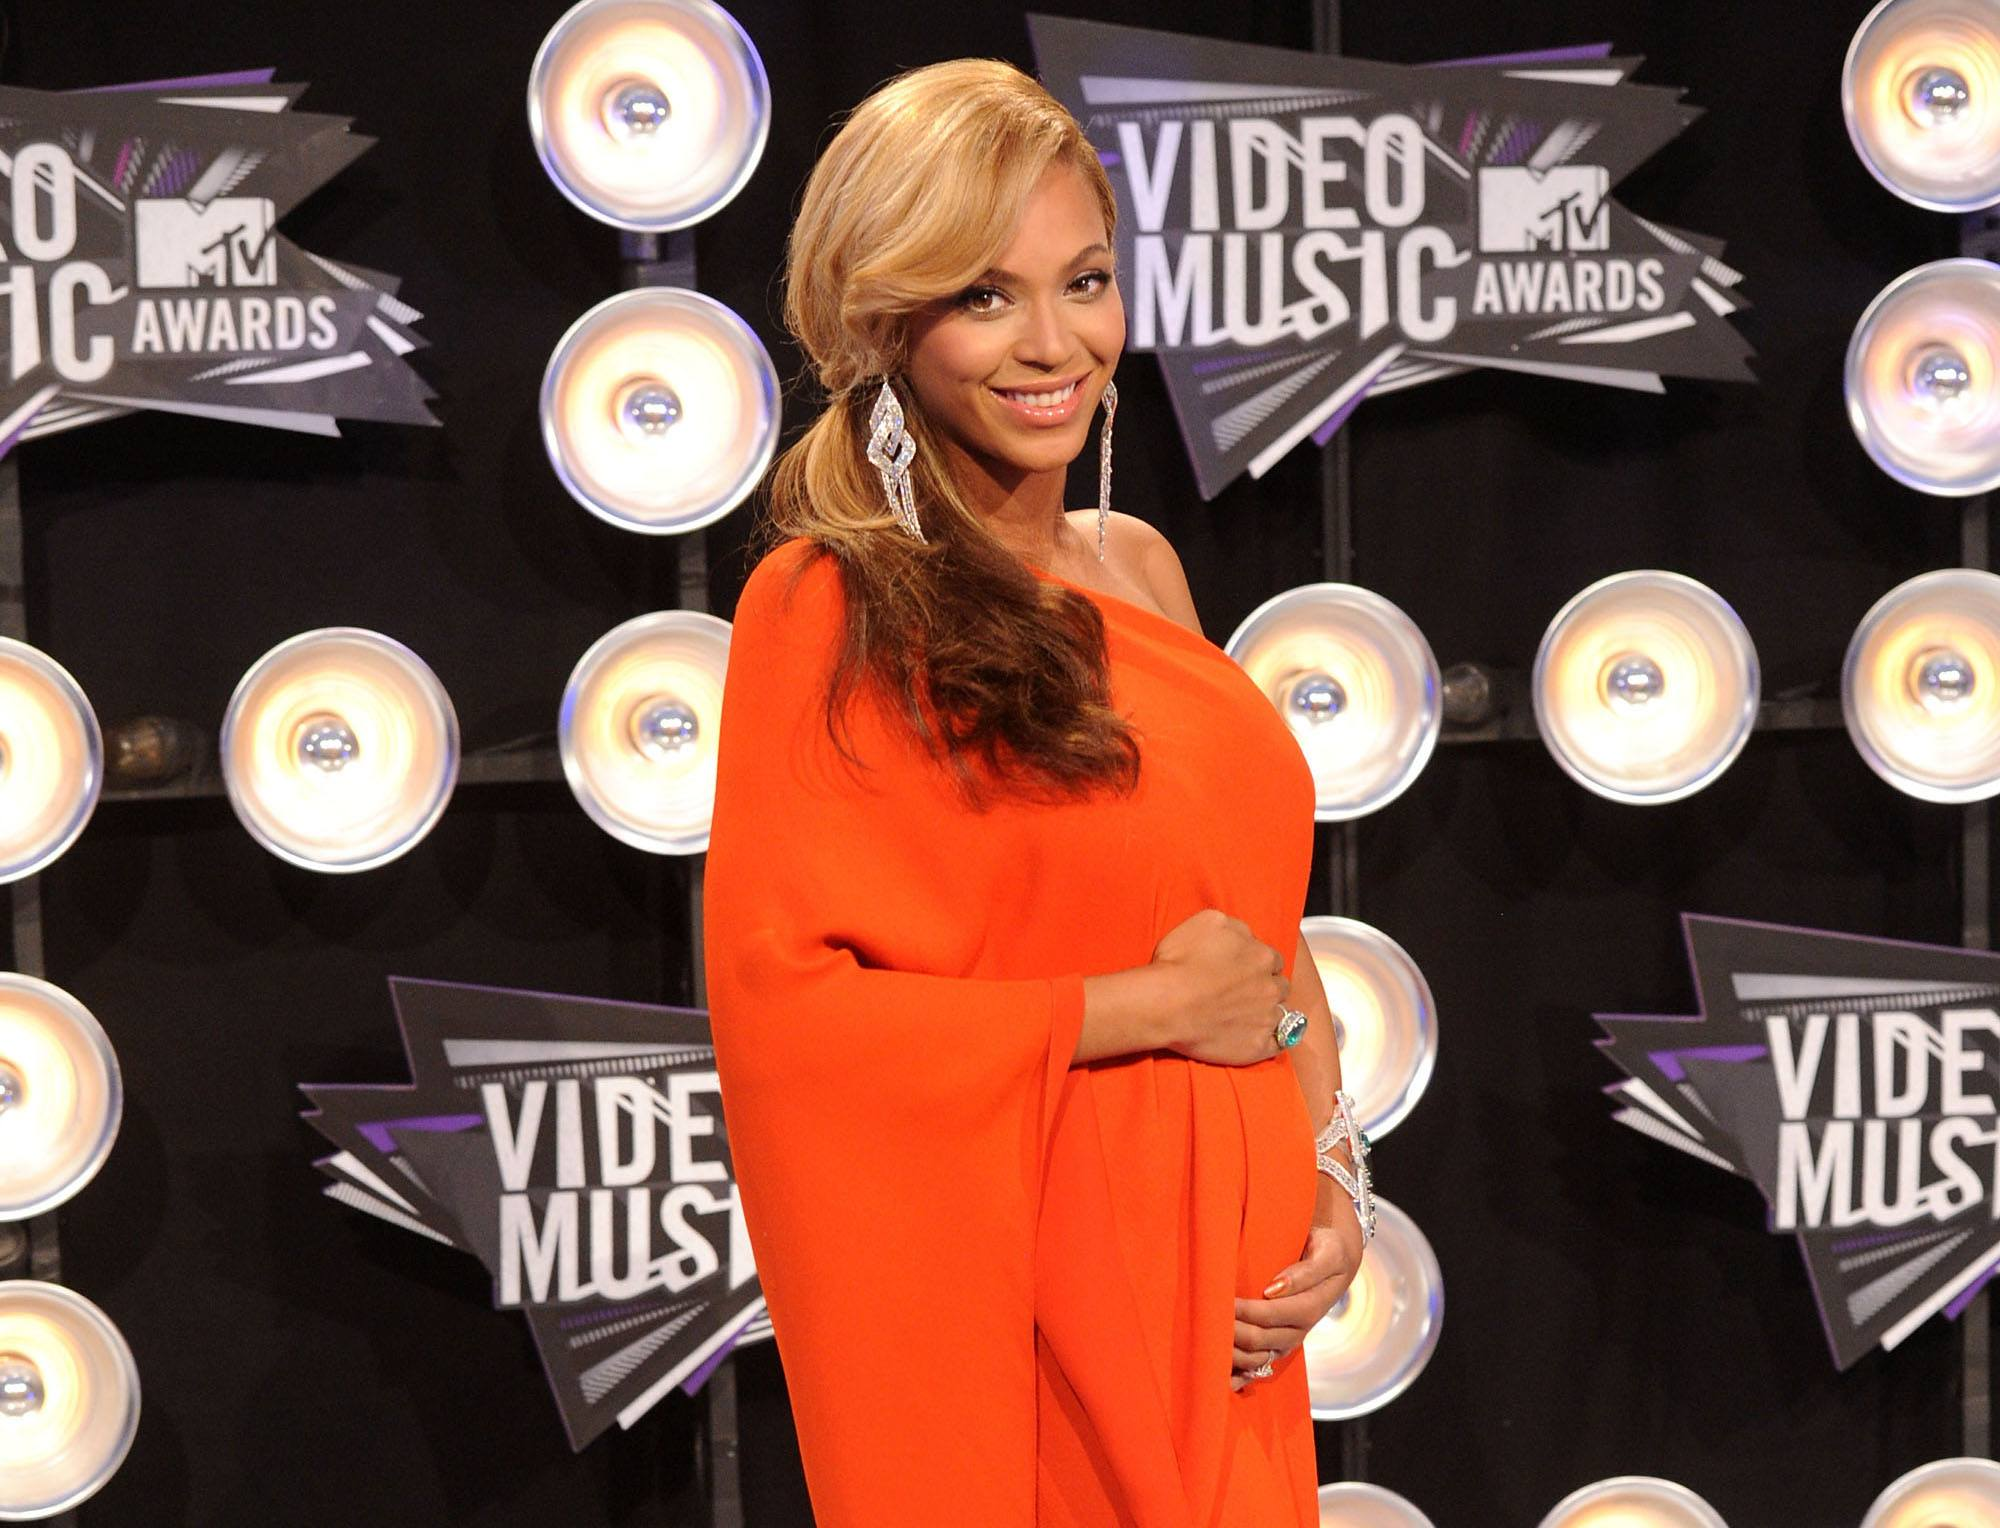 Beyoncé arrives at the 2011 MTV Music Video Awards wearing an orange asymmetrical gown.